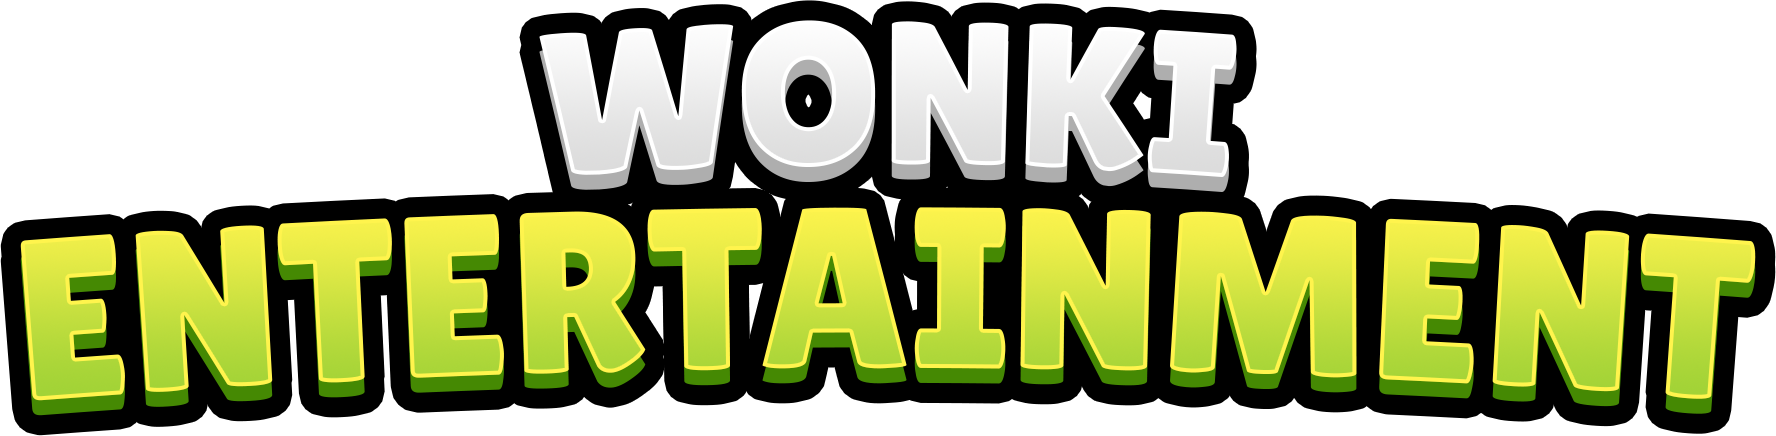 Wonki Entertainment